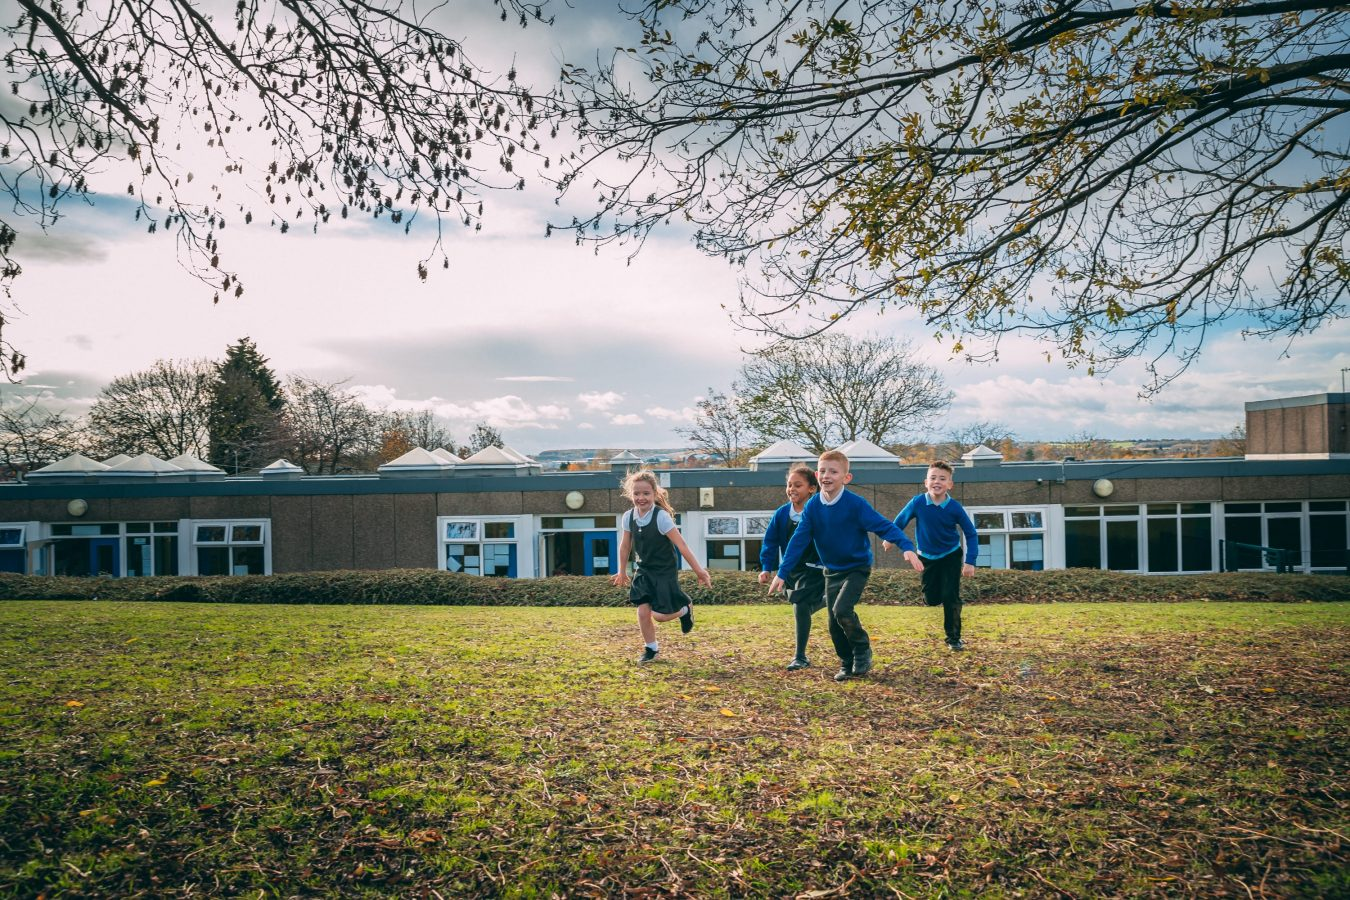 Students running in the school grounds